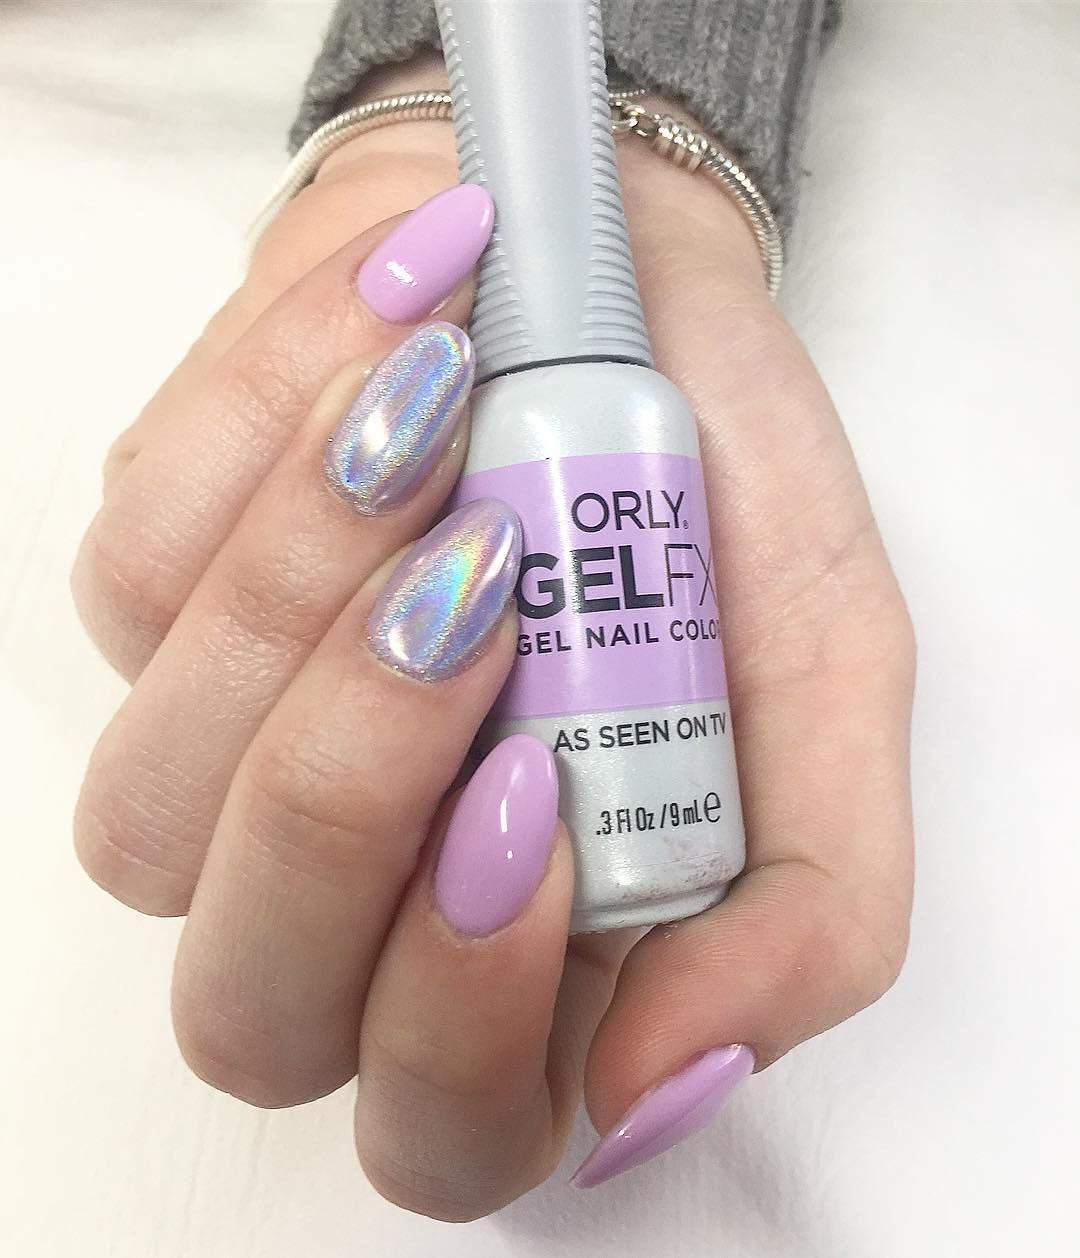 GelFX love from @hollieo.prey! We are drooling over this ...